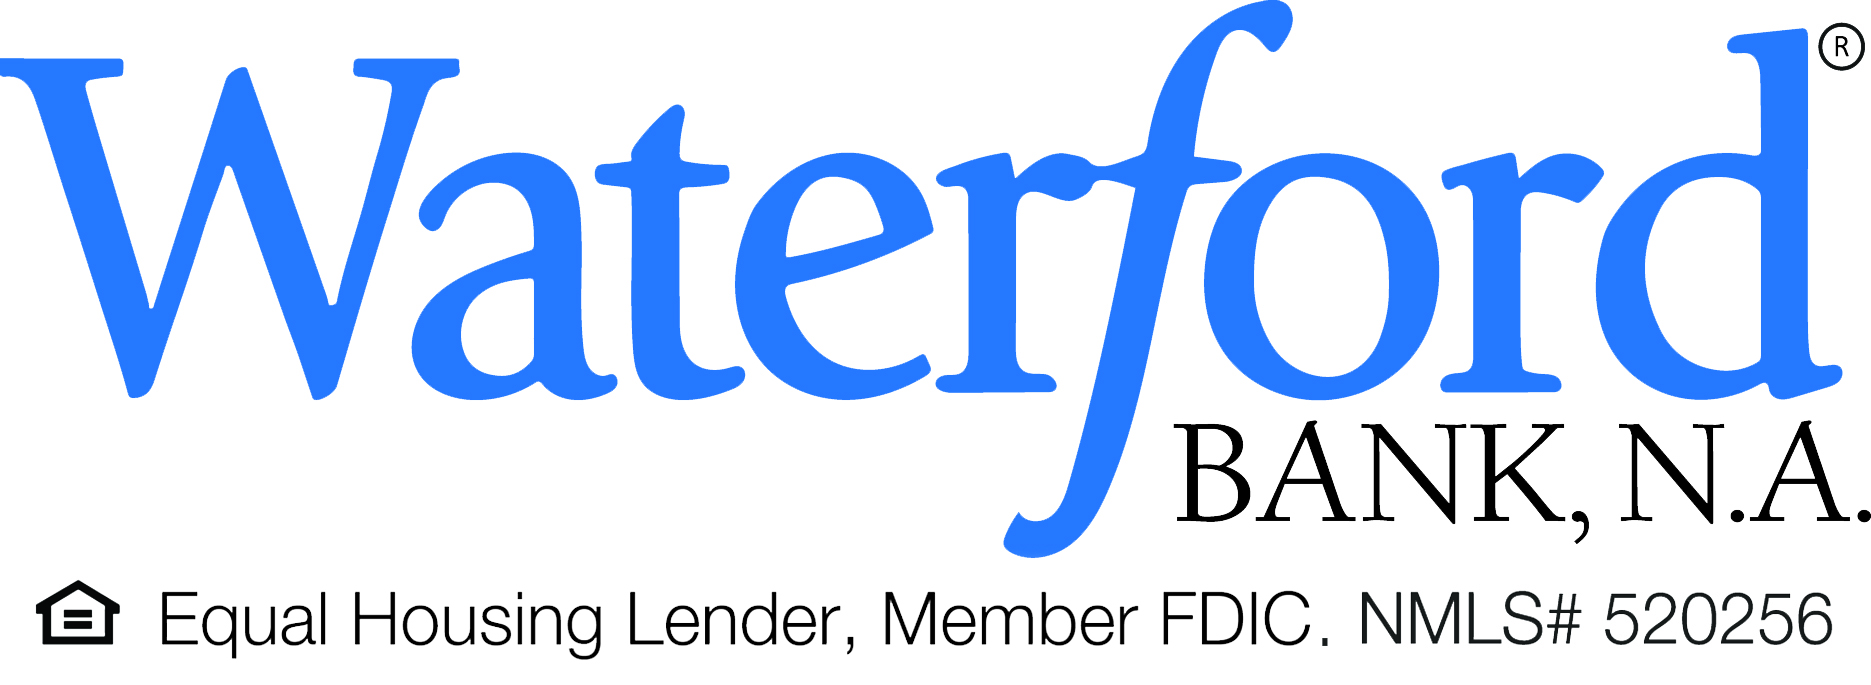 Waterford Bank